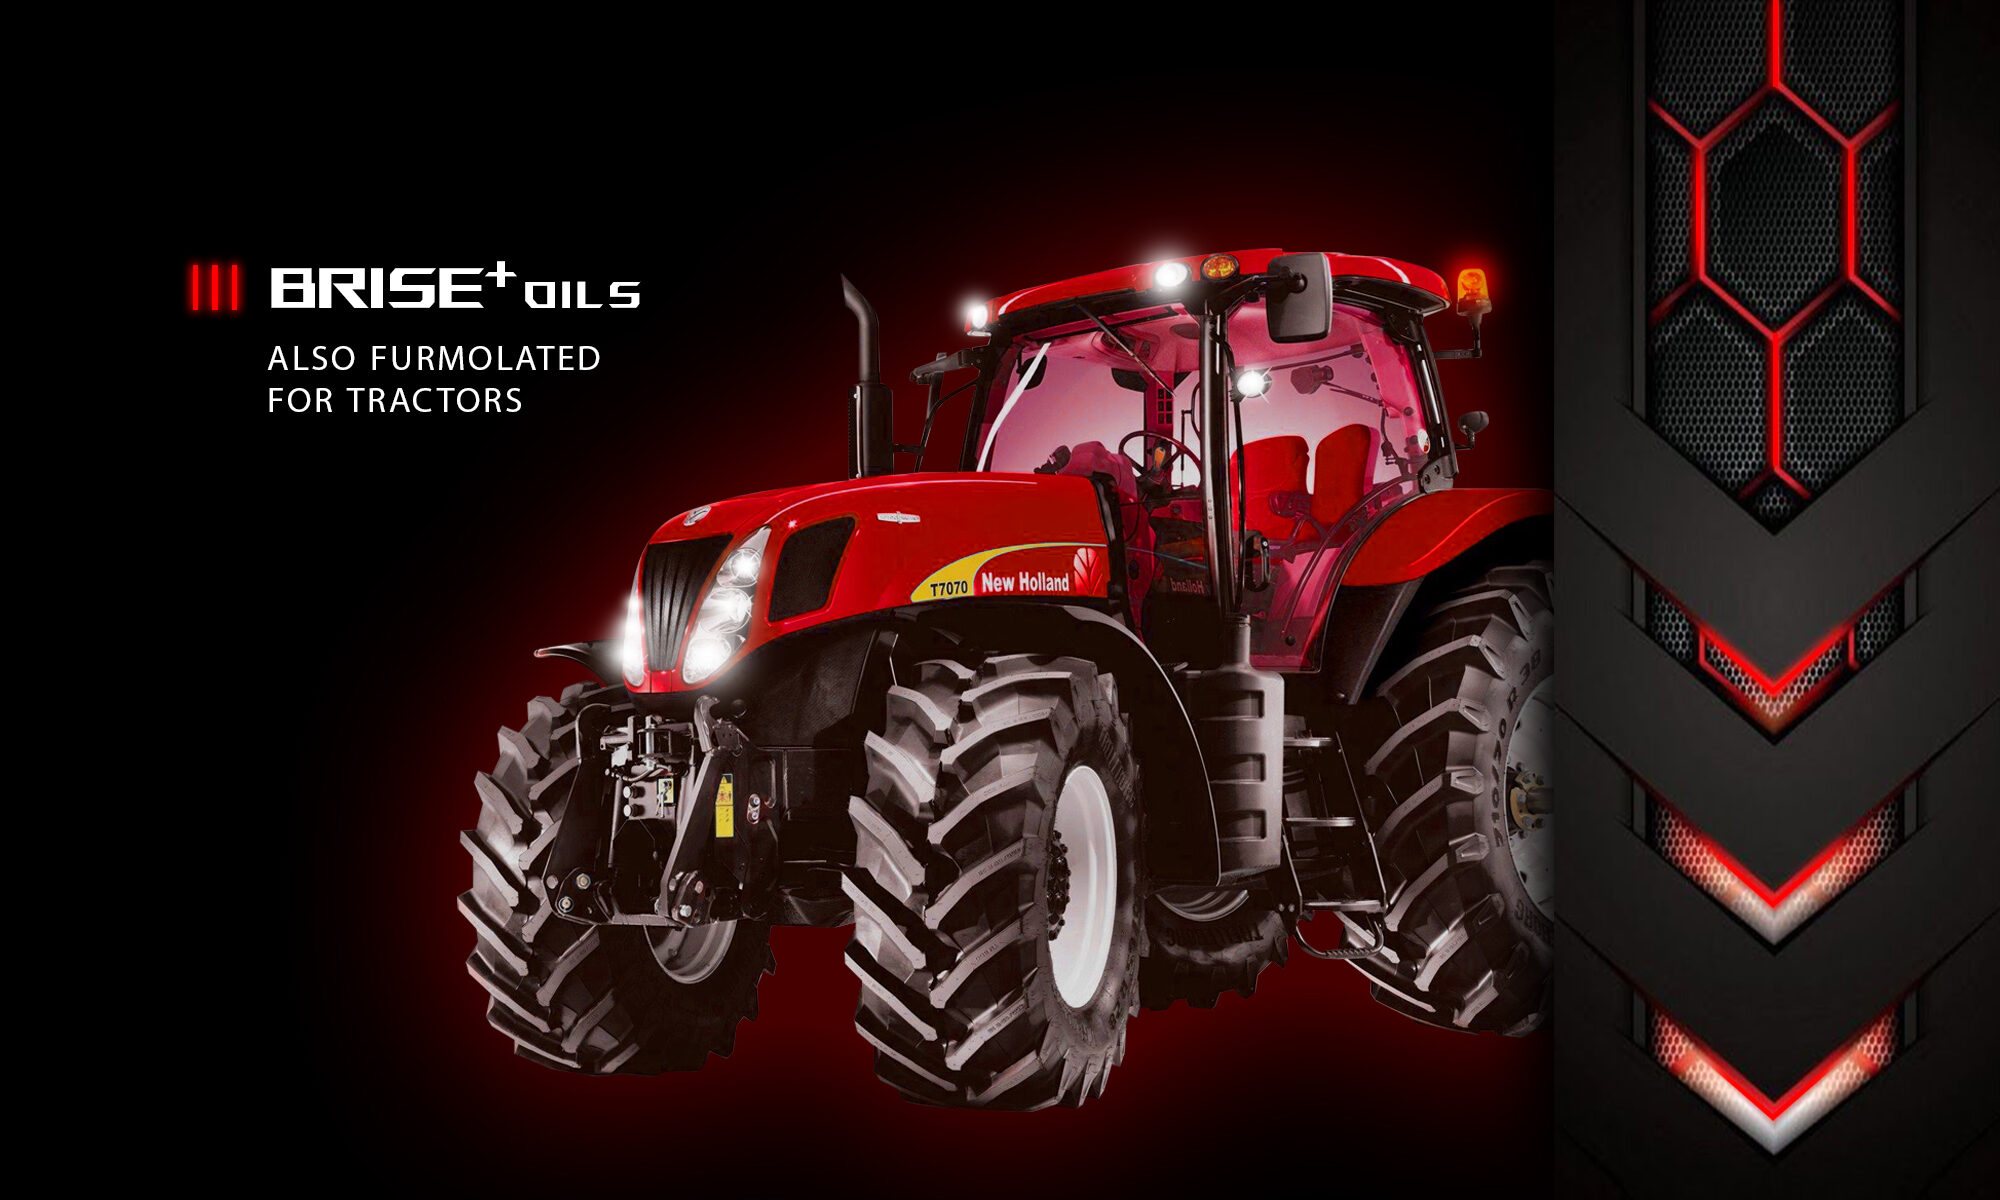 RED HOLLAND TRACTOR POWERED BY BRISE PLUS ENGINE OIL